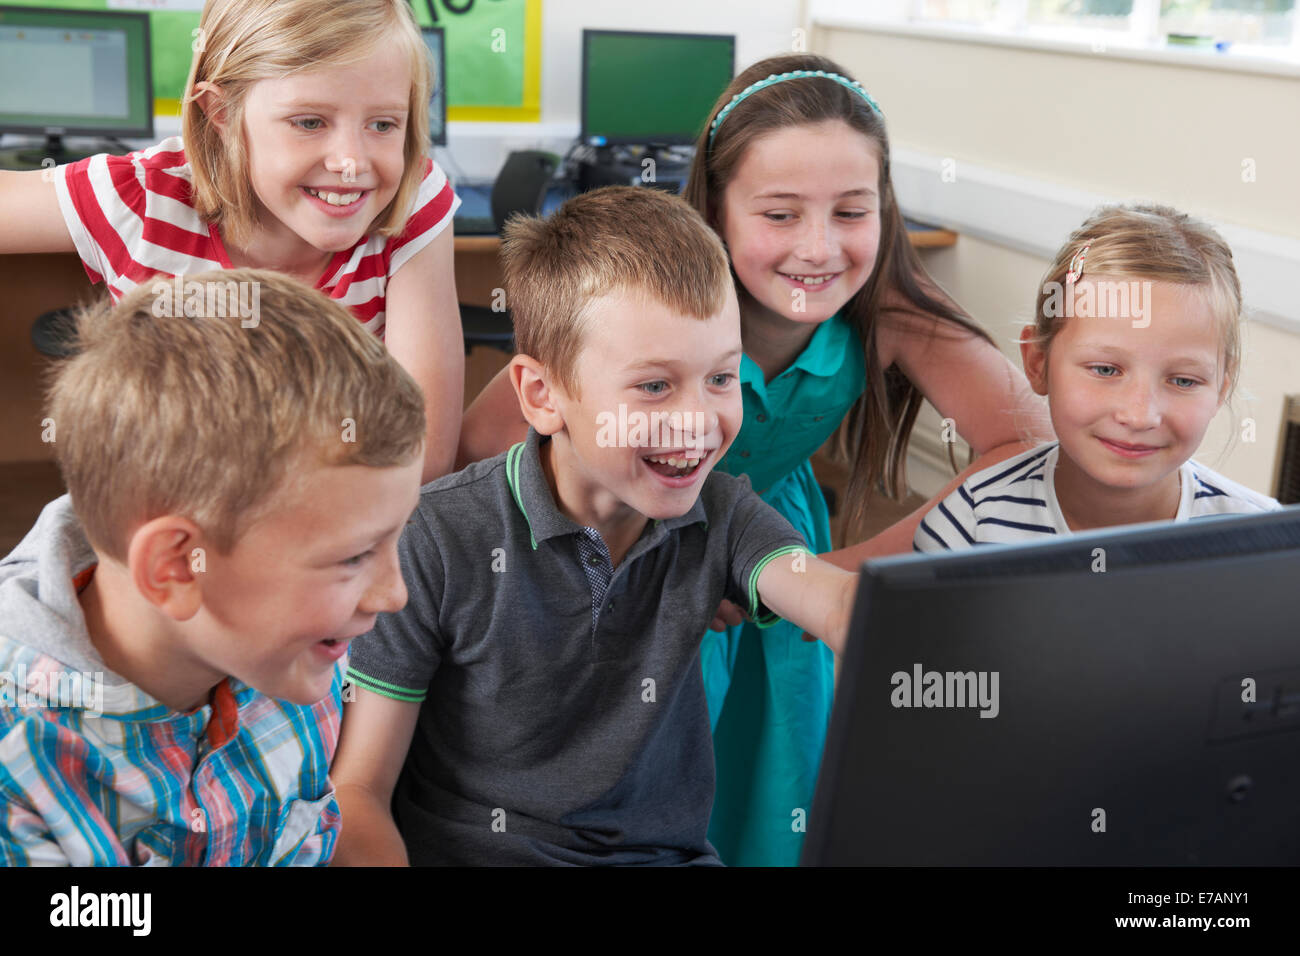 Group Of Elementary Pupils In Computer Class - Stock Image